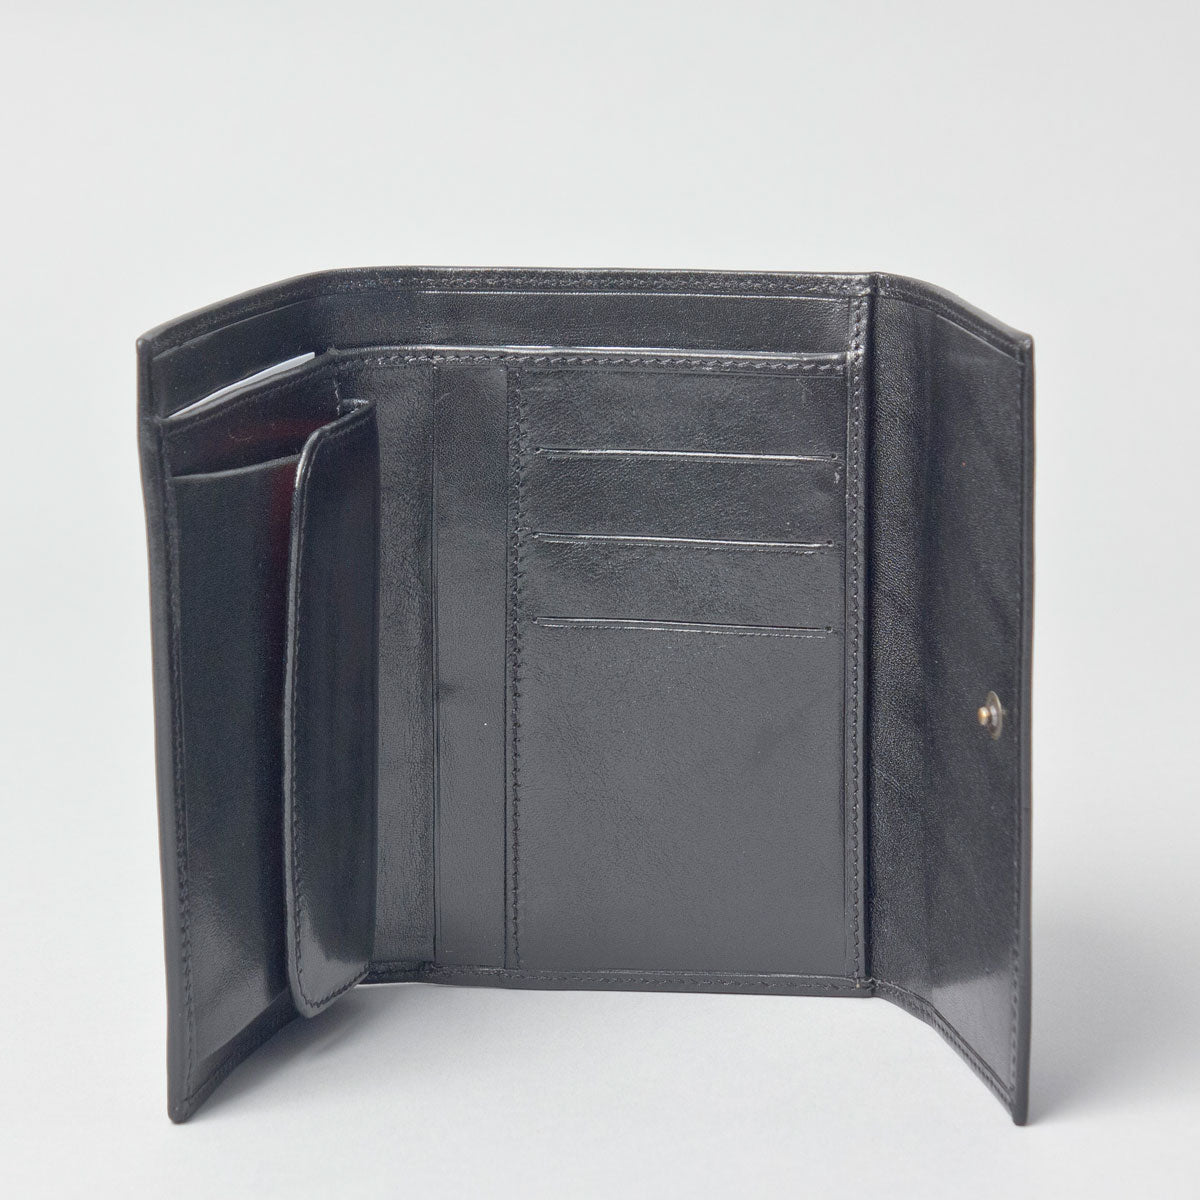 Image 1 of the Black Ladies Purse with Pocket